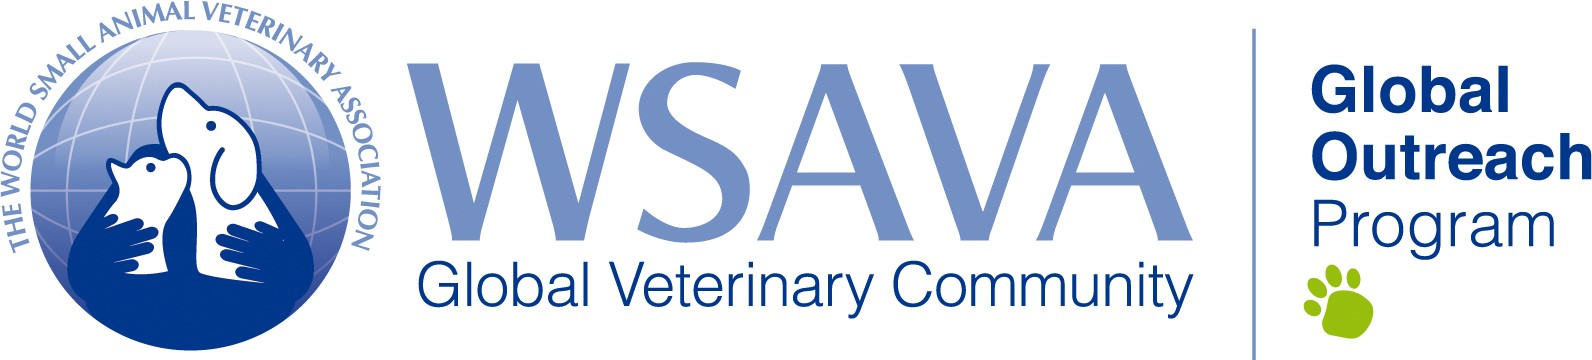 WSAVA Global Outreach.jpg